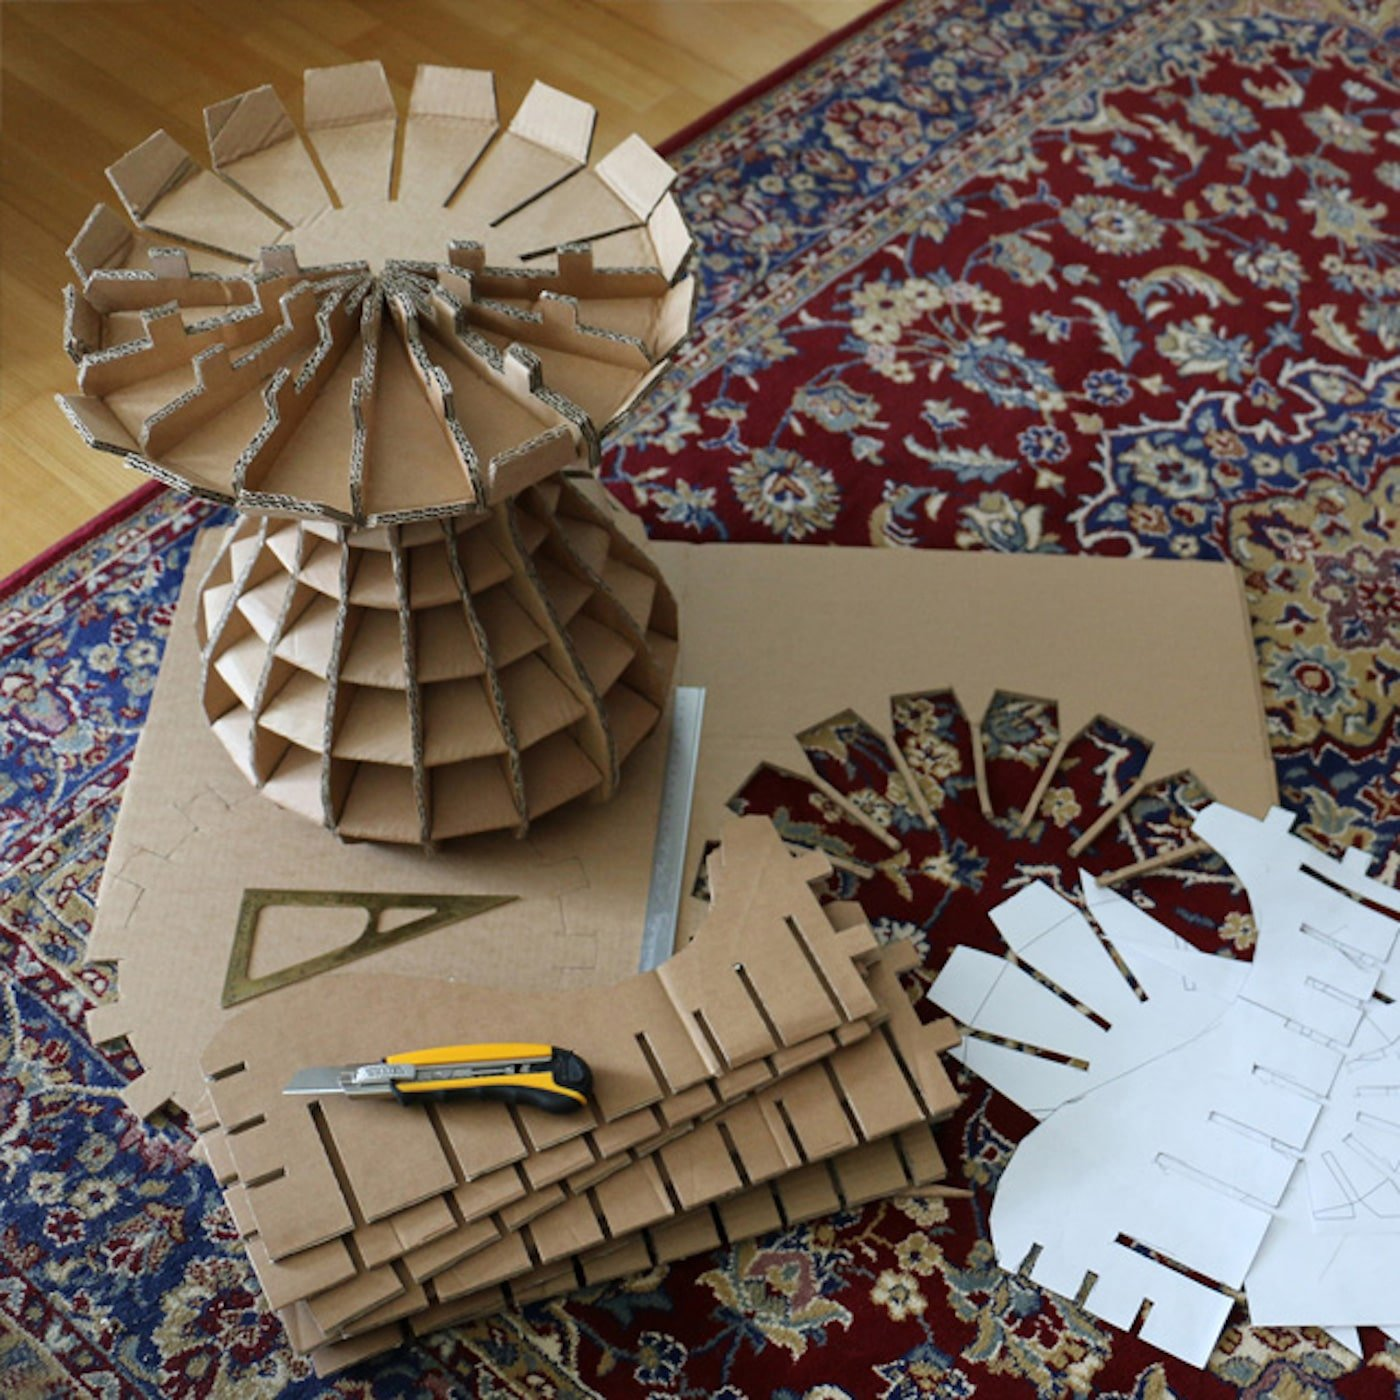 Stool made from recycled cardboard